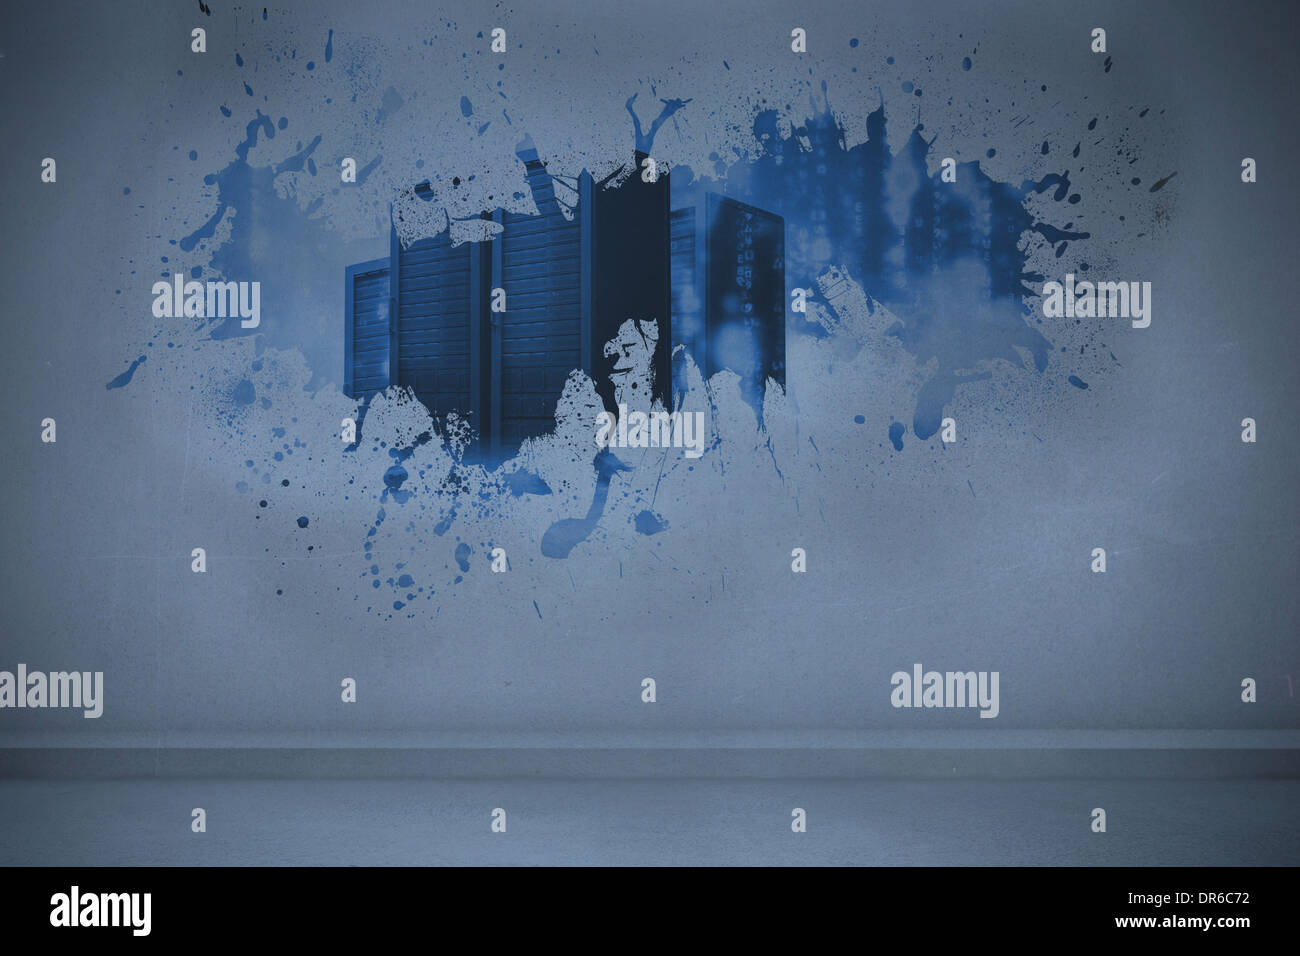 Splash showing server towers - Stock Image